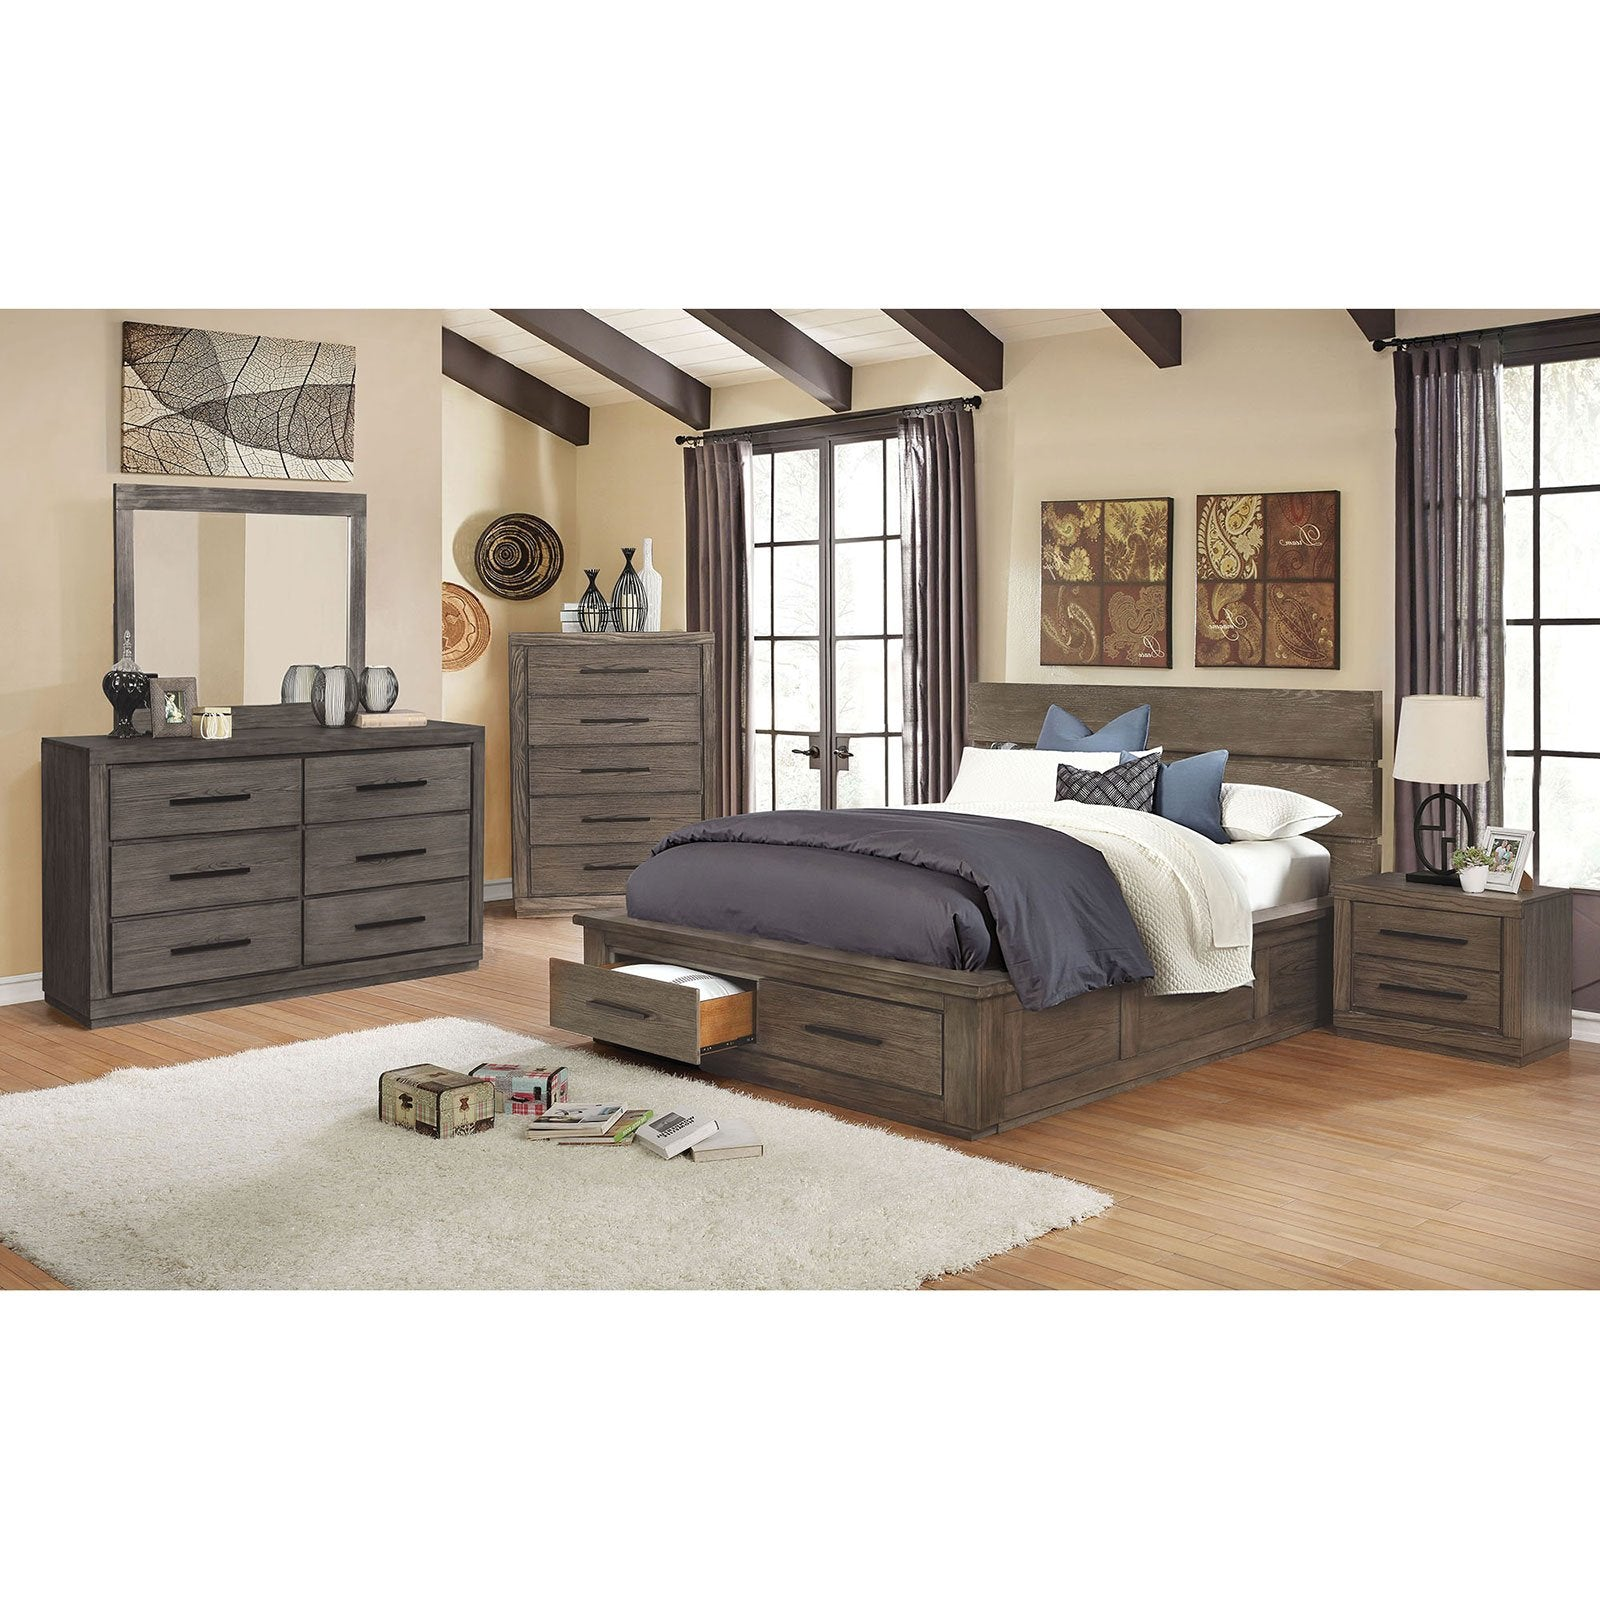 Oakburn Transitional 5 Pc. Queen Bedroom Set w-Chest - InteriorDesignsToGo.com